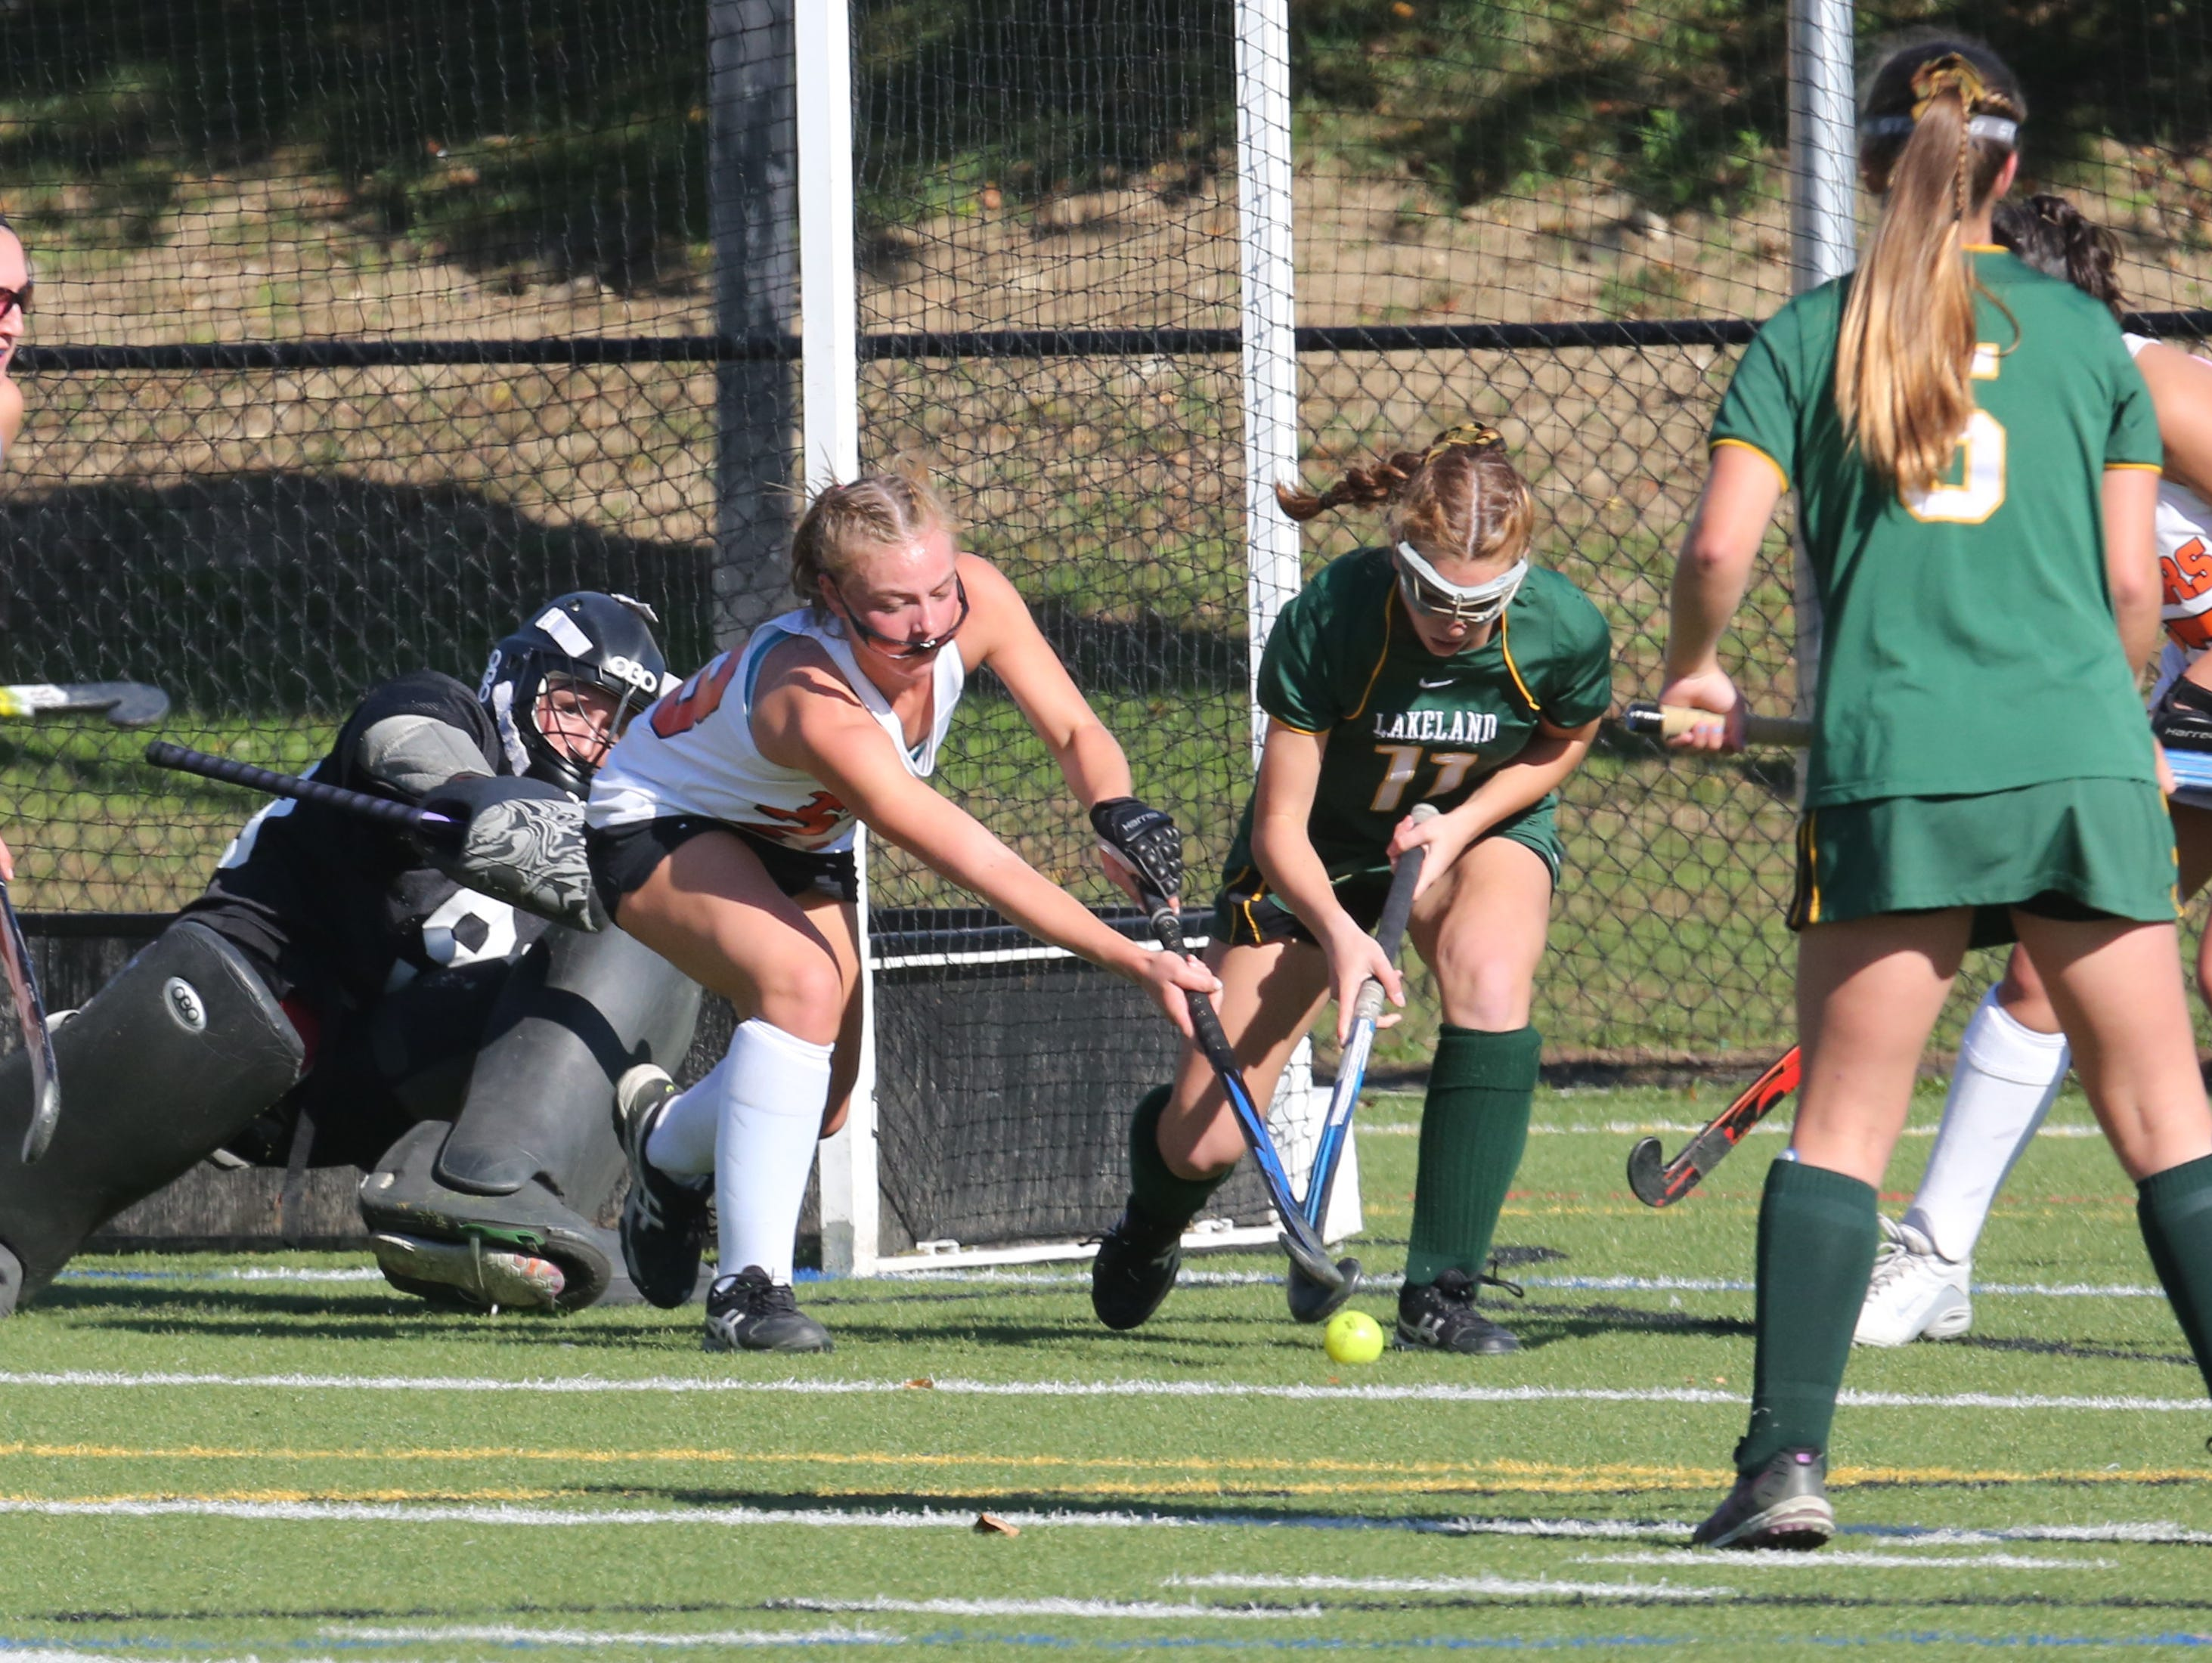 Mamaroneck goalie Charlotte Mackie protects the goal as teammate Emily Mahland and Lakeland's Juliana Cappello try to control the ball during their game in Mamaroneck, Oct 15, 2016.